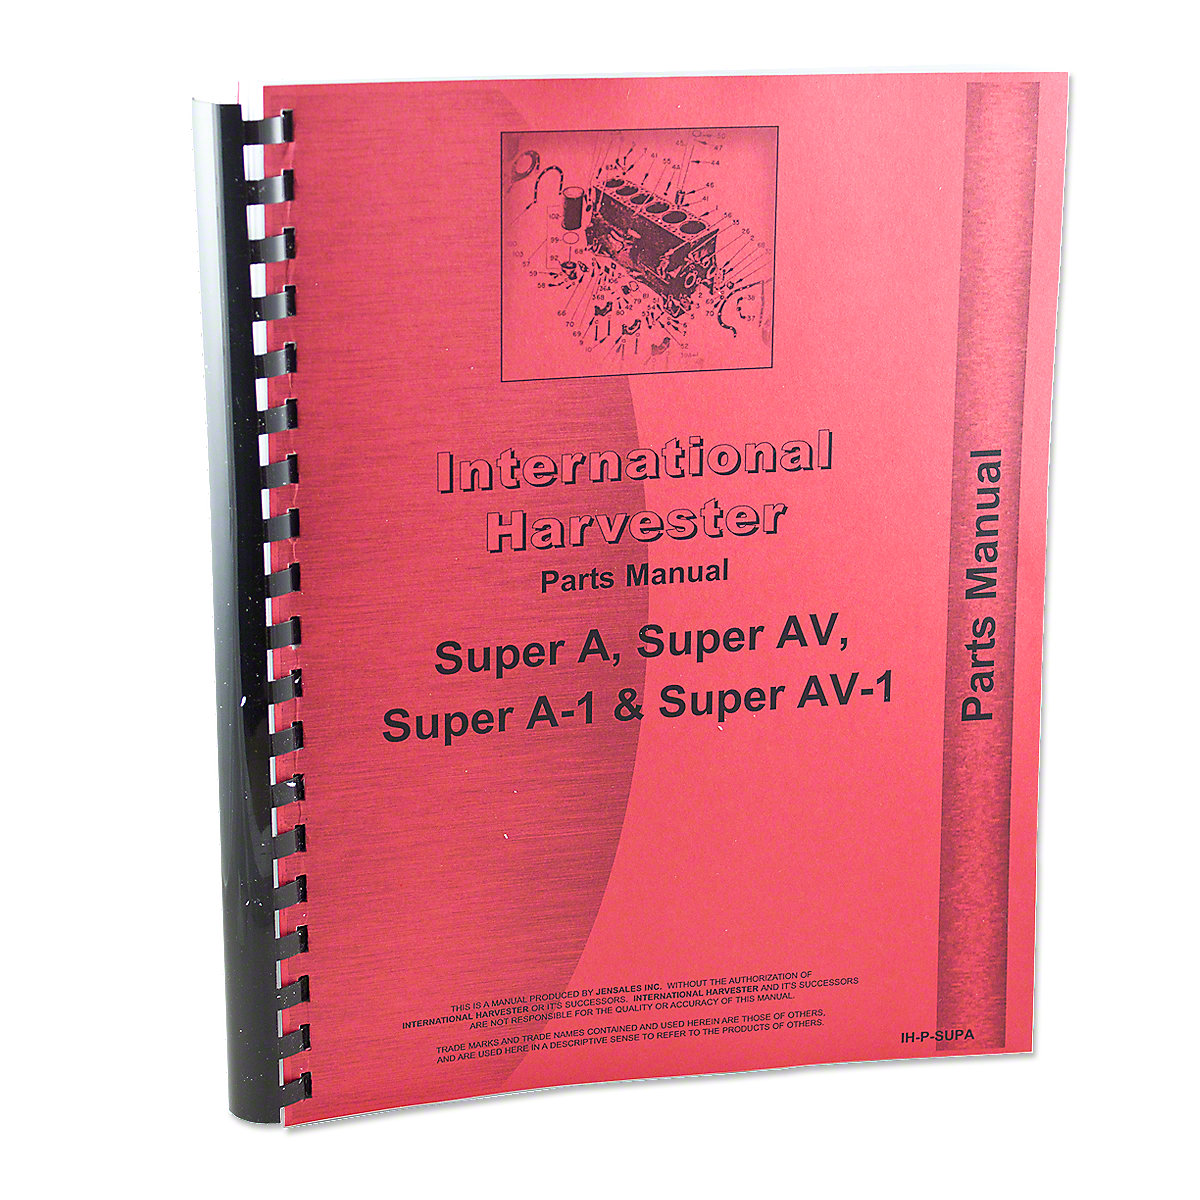 REP1745 International Harvester Farmall Super A Parts Manual